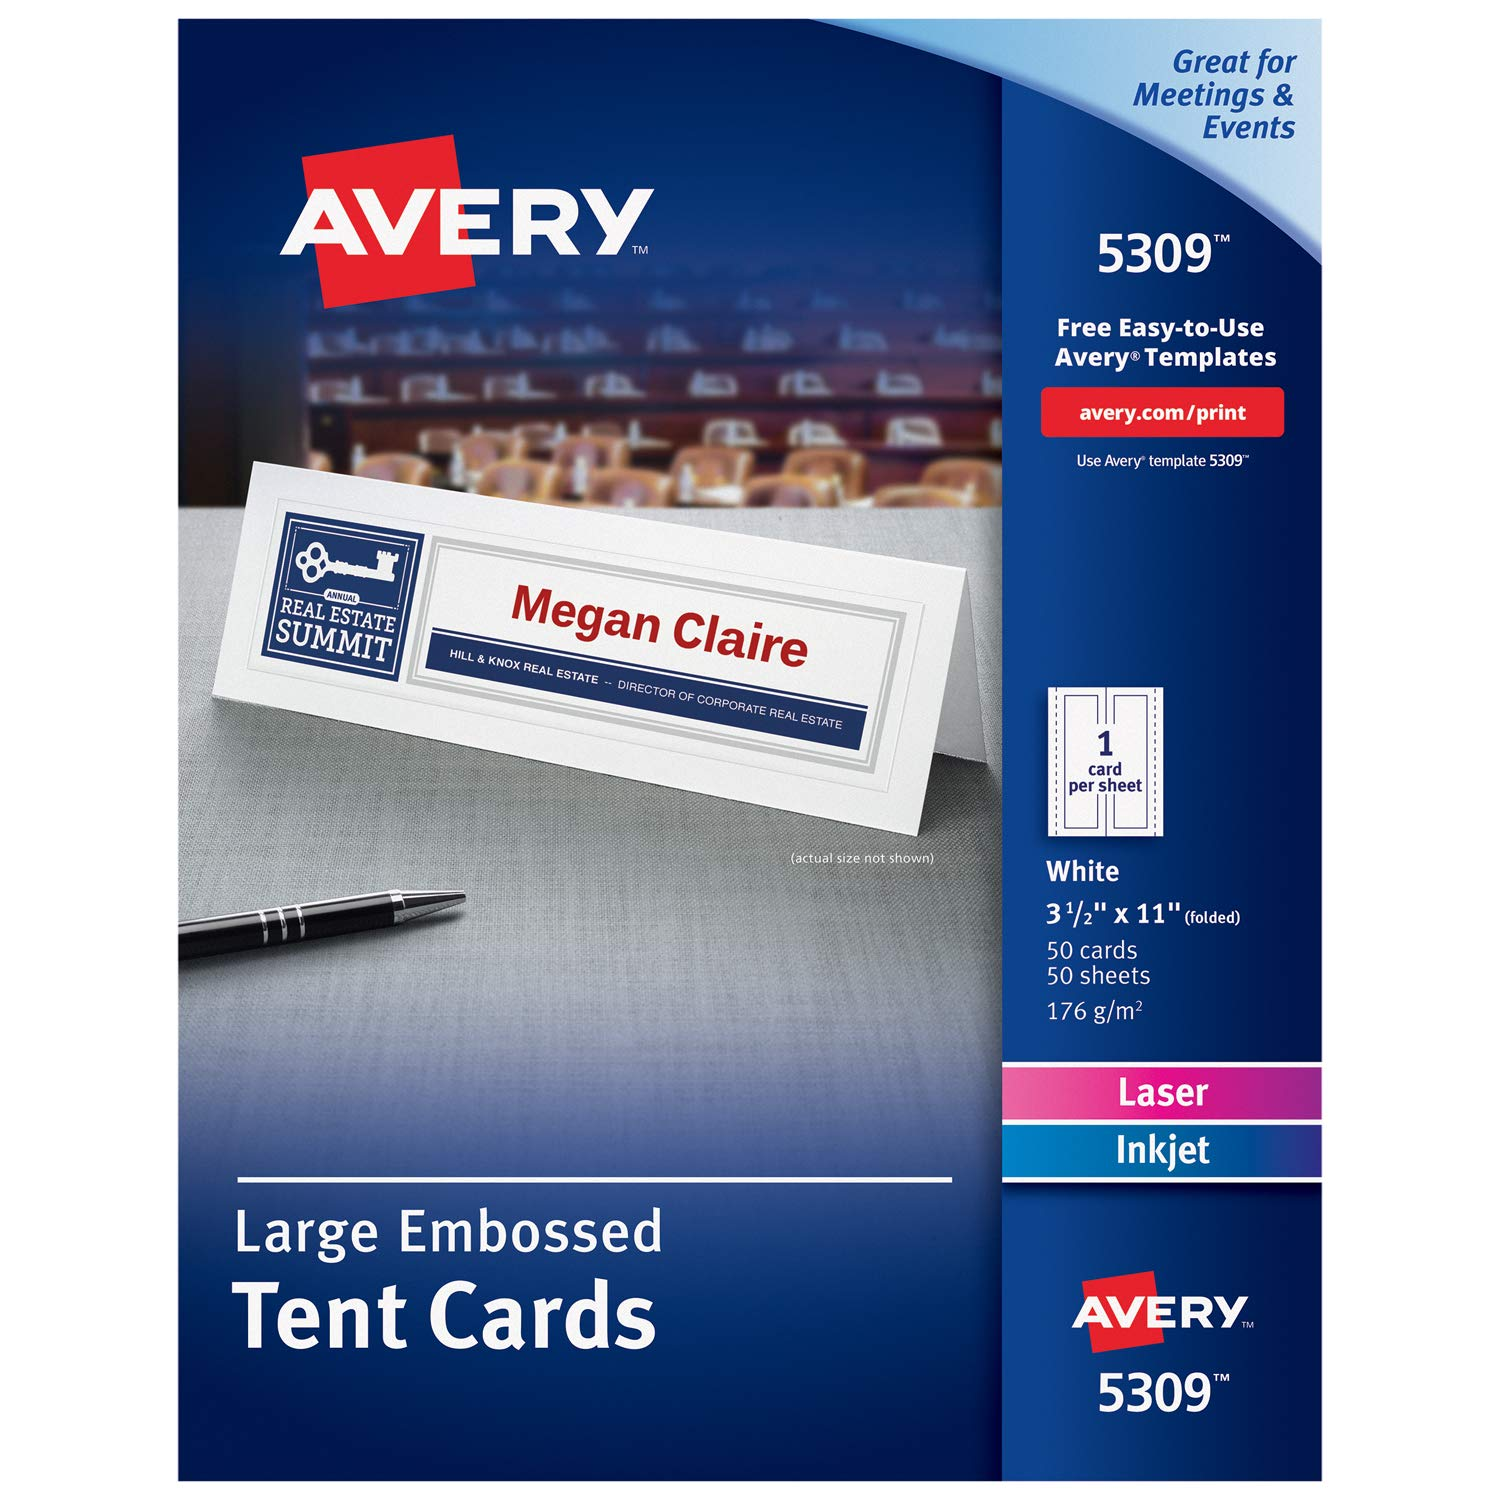 Avery Printable Large Tent Cards, Laser & Inkjet Printers, 50 Cards, 3.5 x 11 (5309)